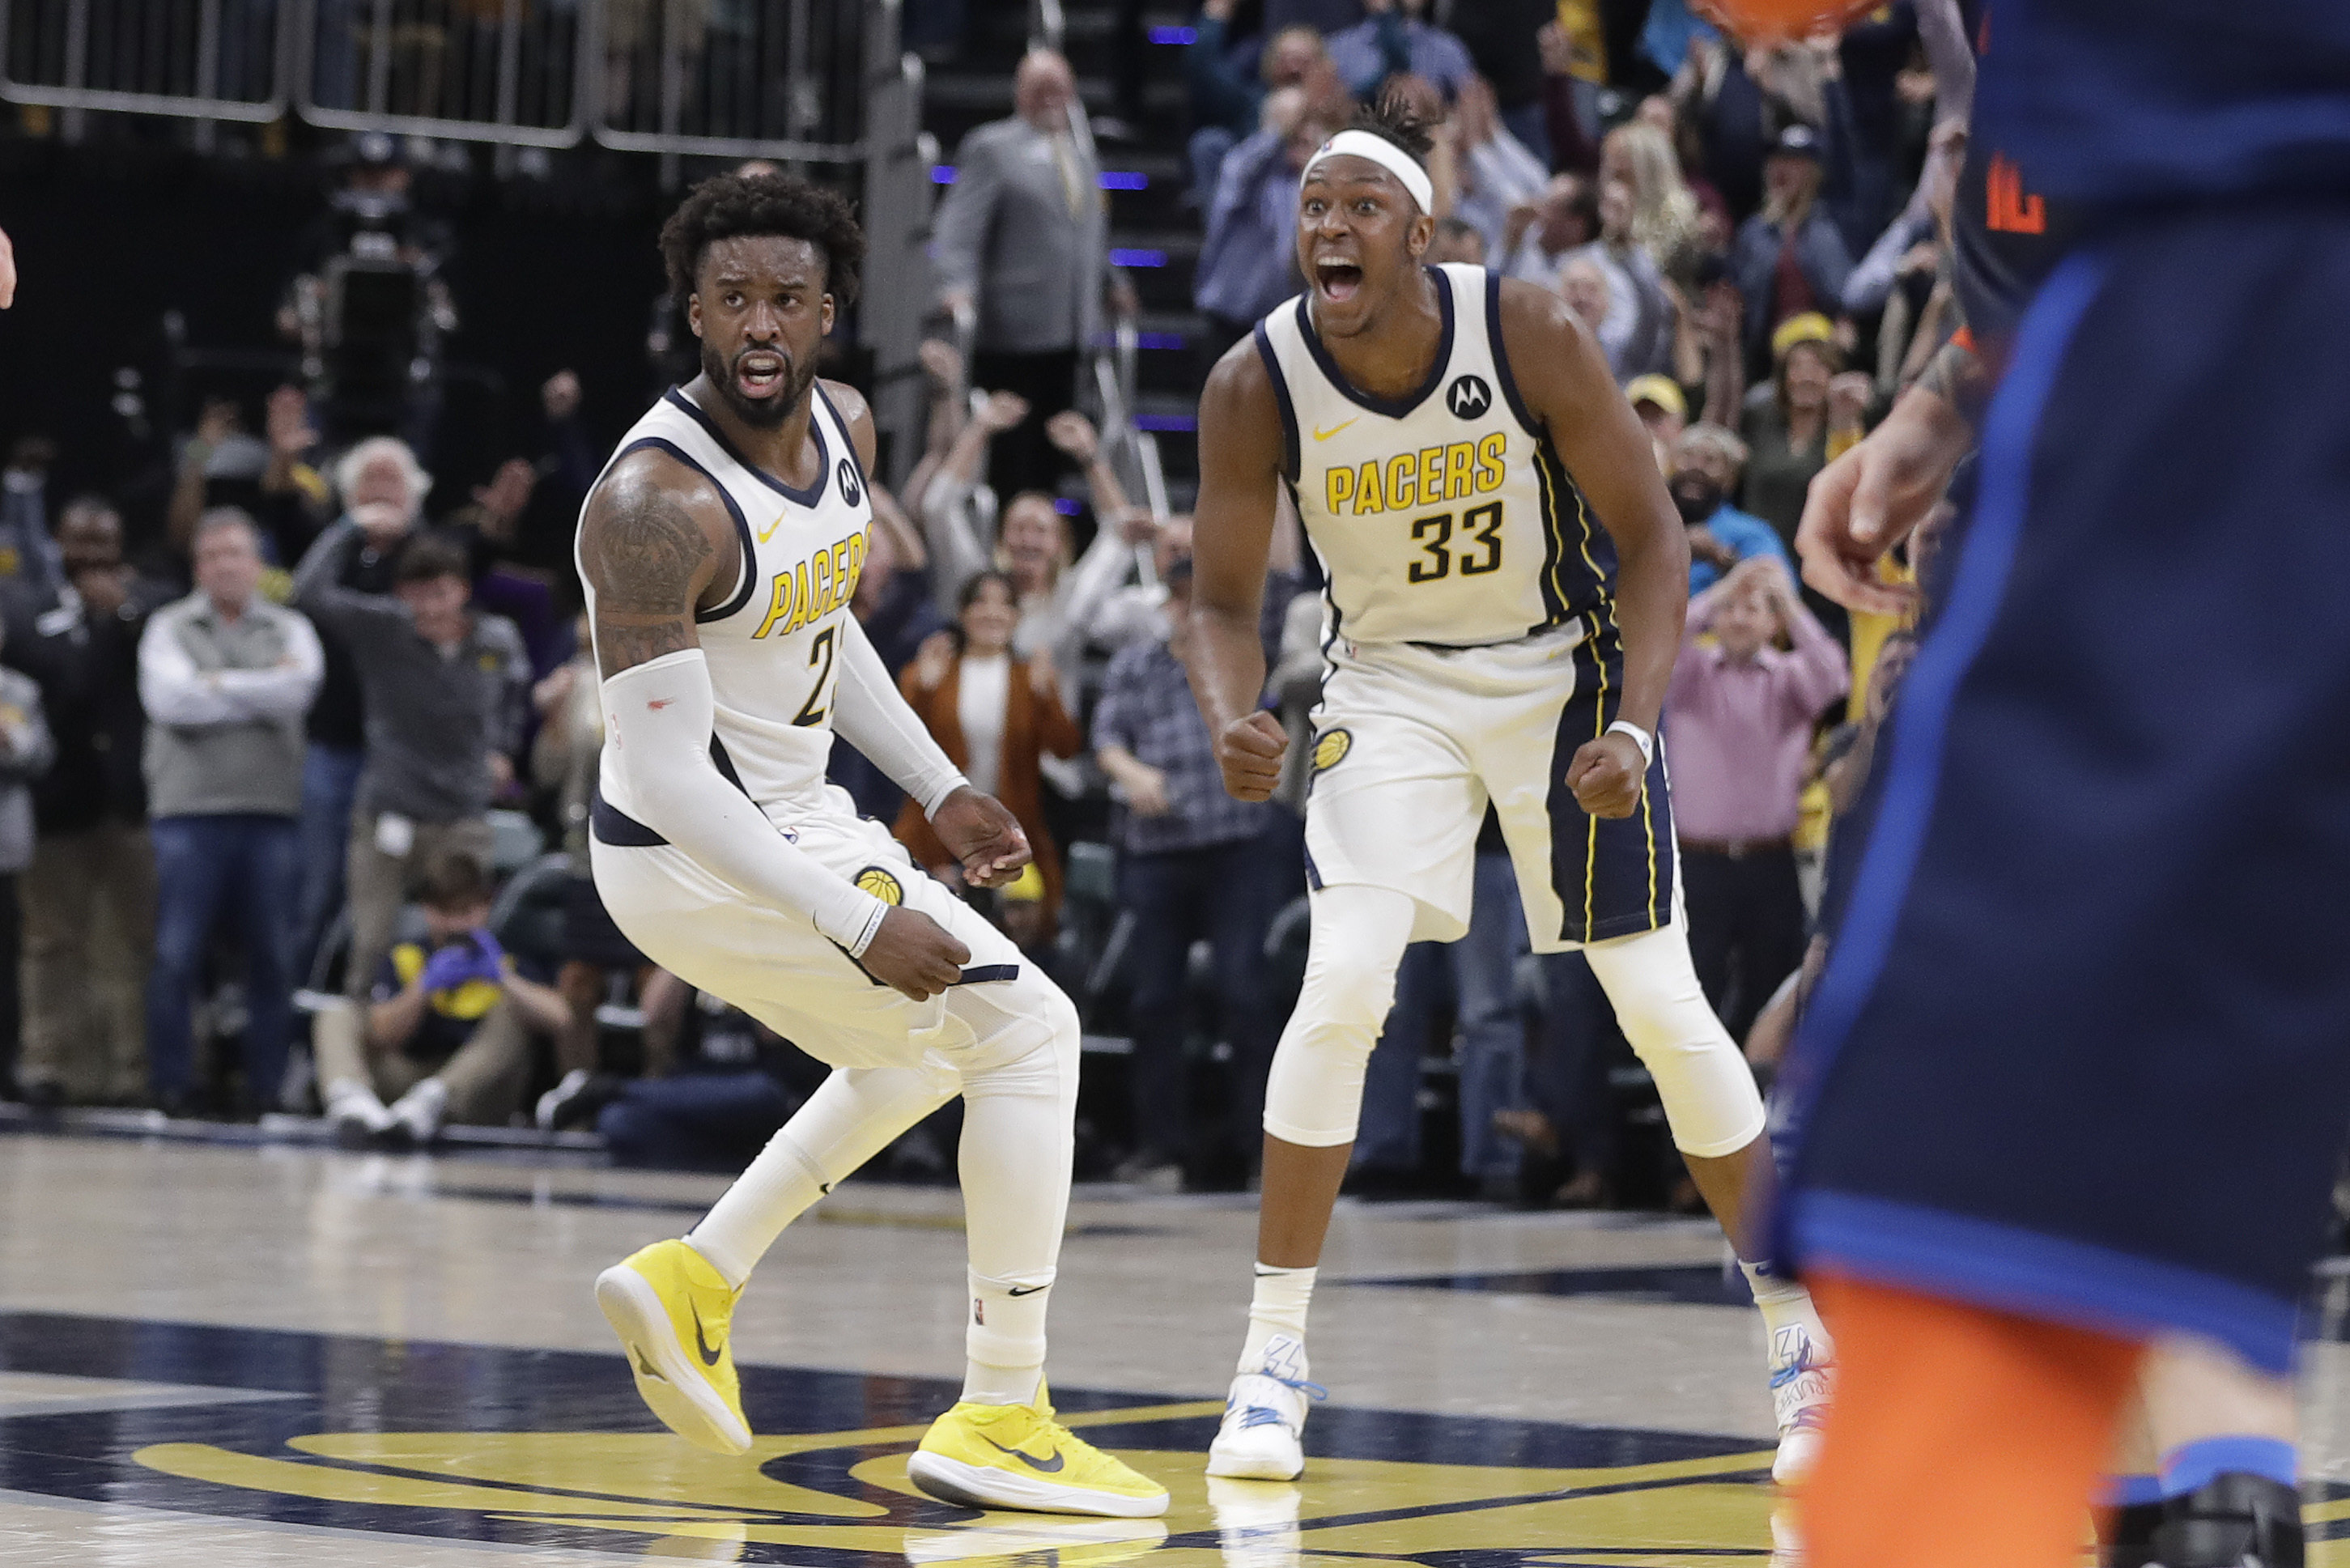 Thunder Pacers Basketball_1552616520185